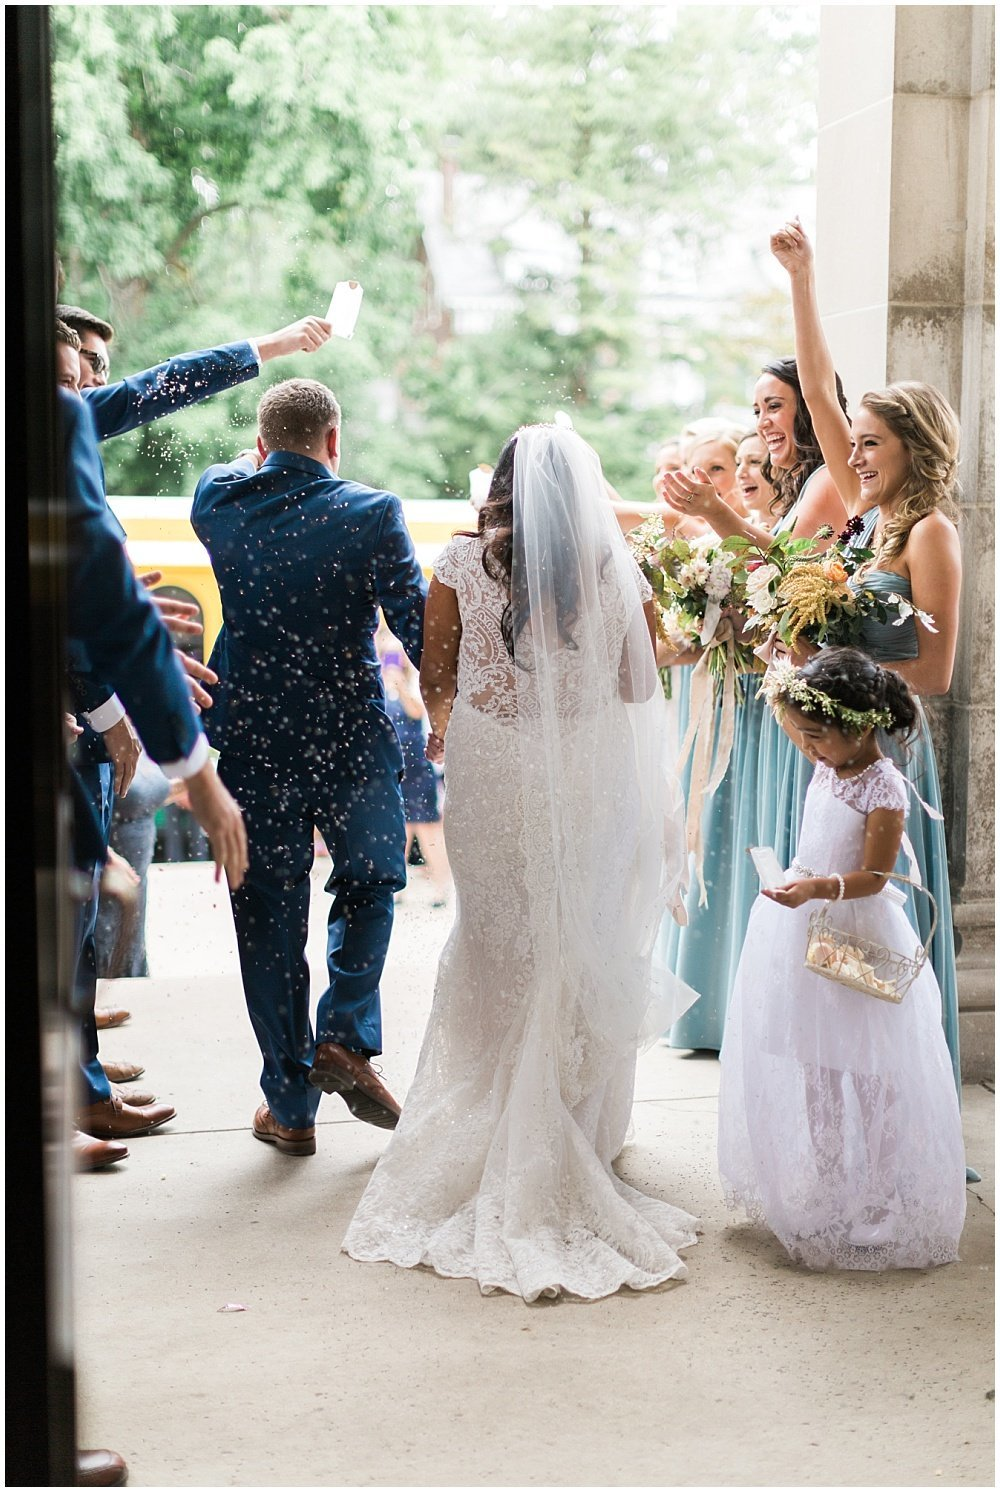 Summer-Mexican-Inspired-Gold-And-Floral-Crowne-Plaza-Indianapolis-Downtown-Union-Station-Wedding-Cory-Jackie-Wedding-Photographers-Jessica-Dum-Wedding-Coordination_photo___0016